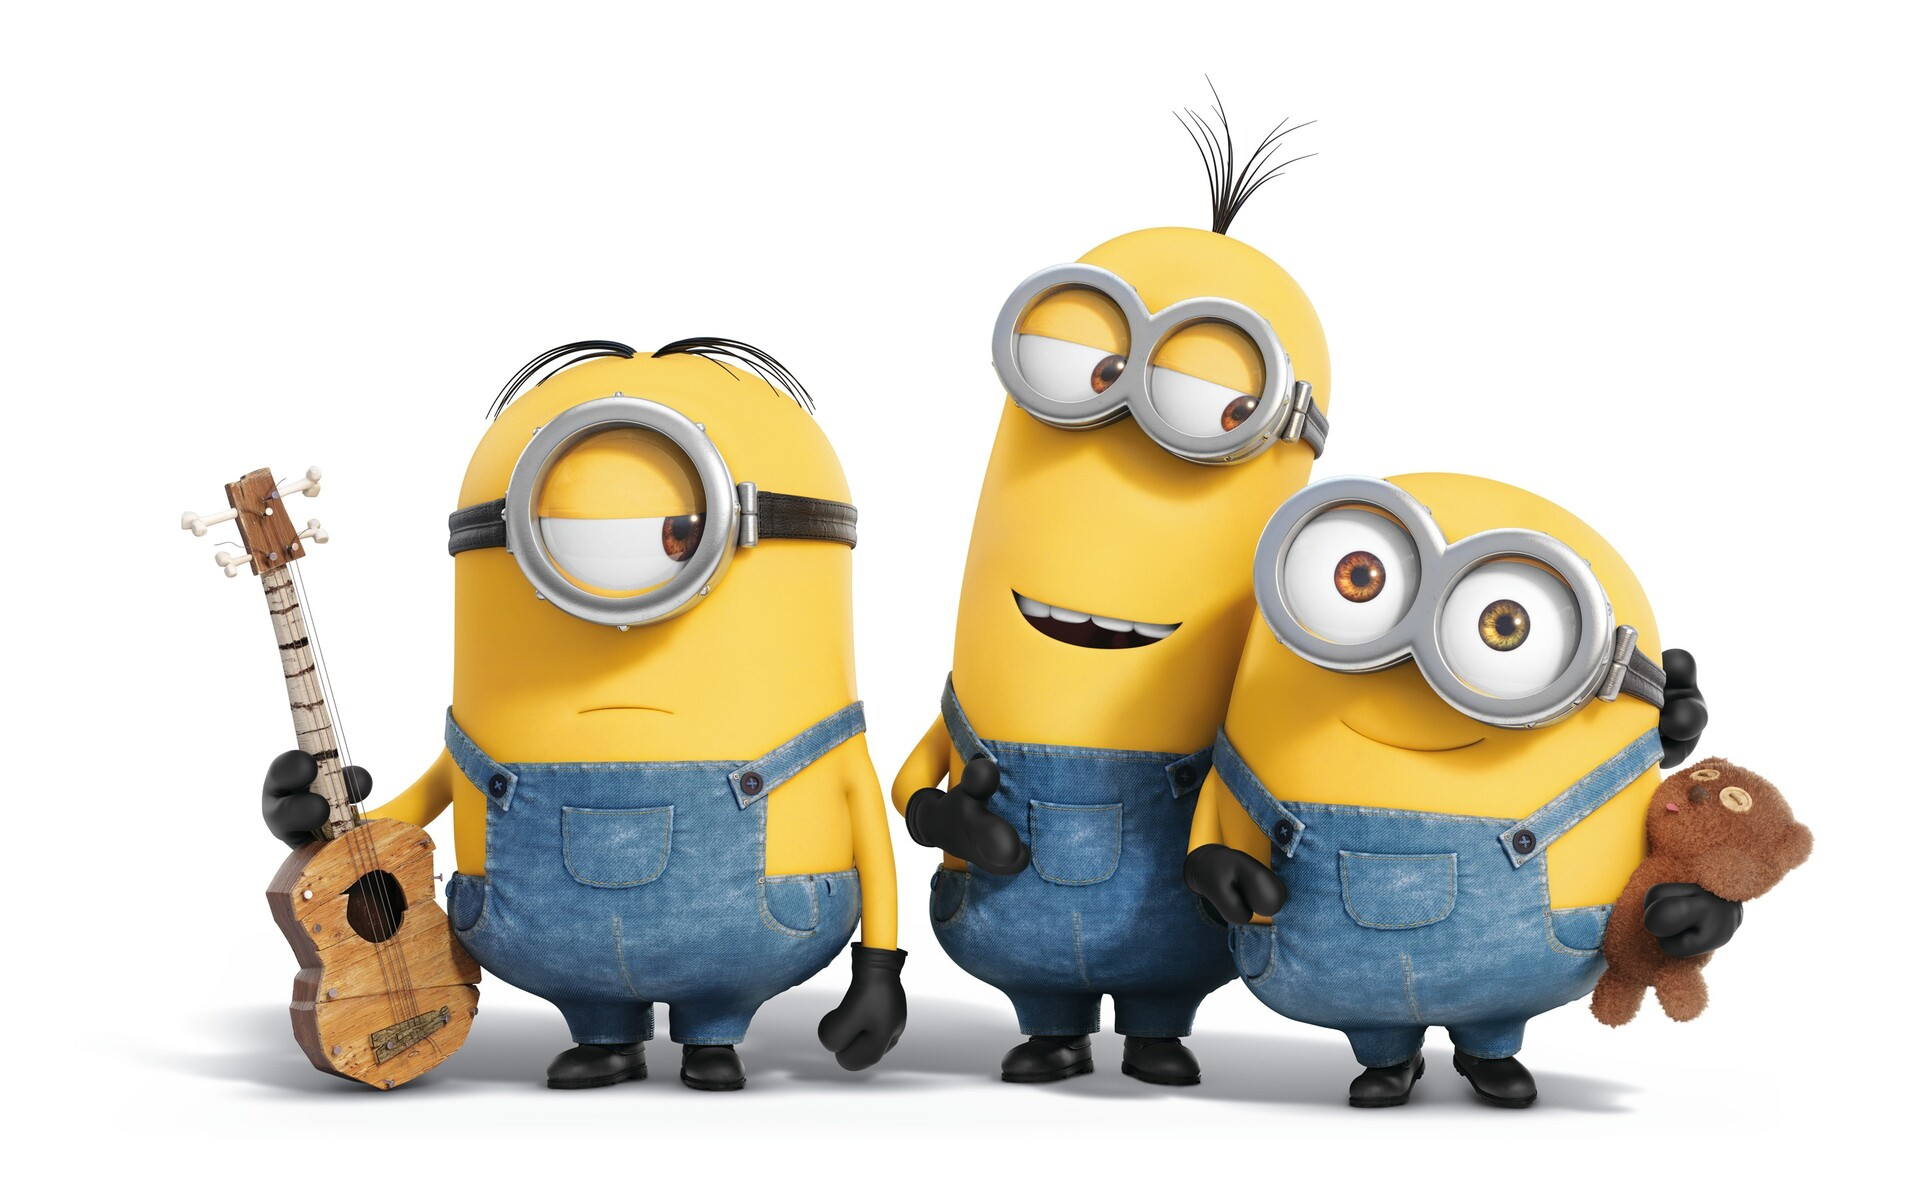 1920x1200 minions movie 1080p resolution hd 4k wallpapers, images